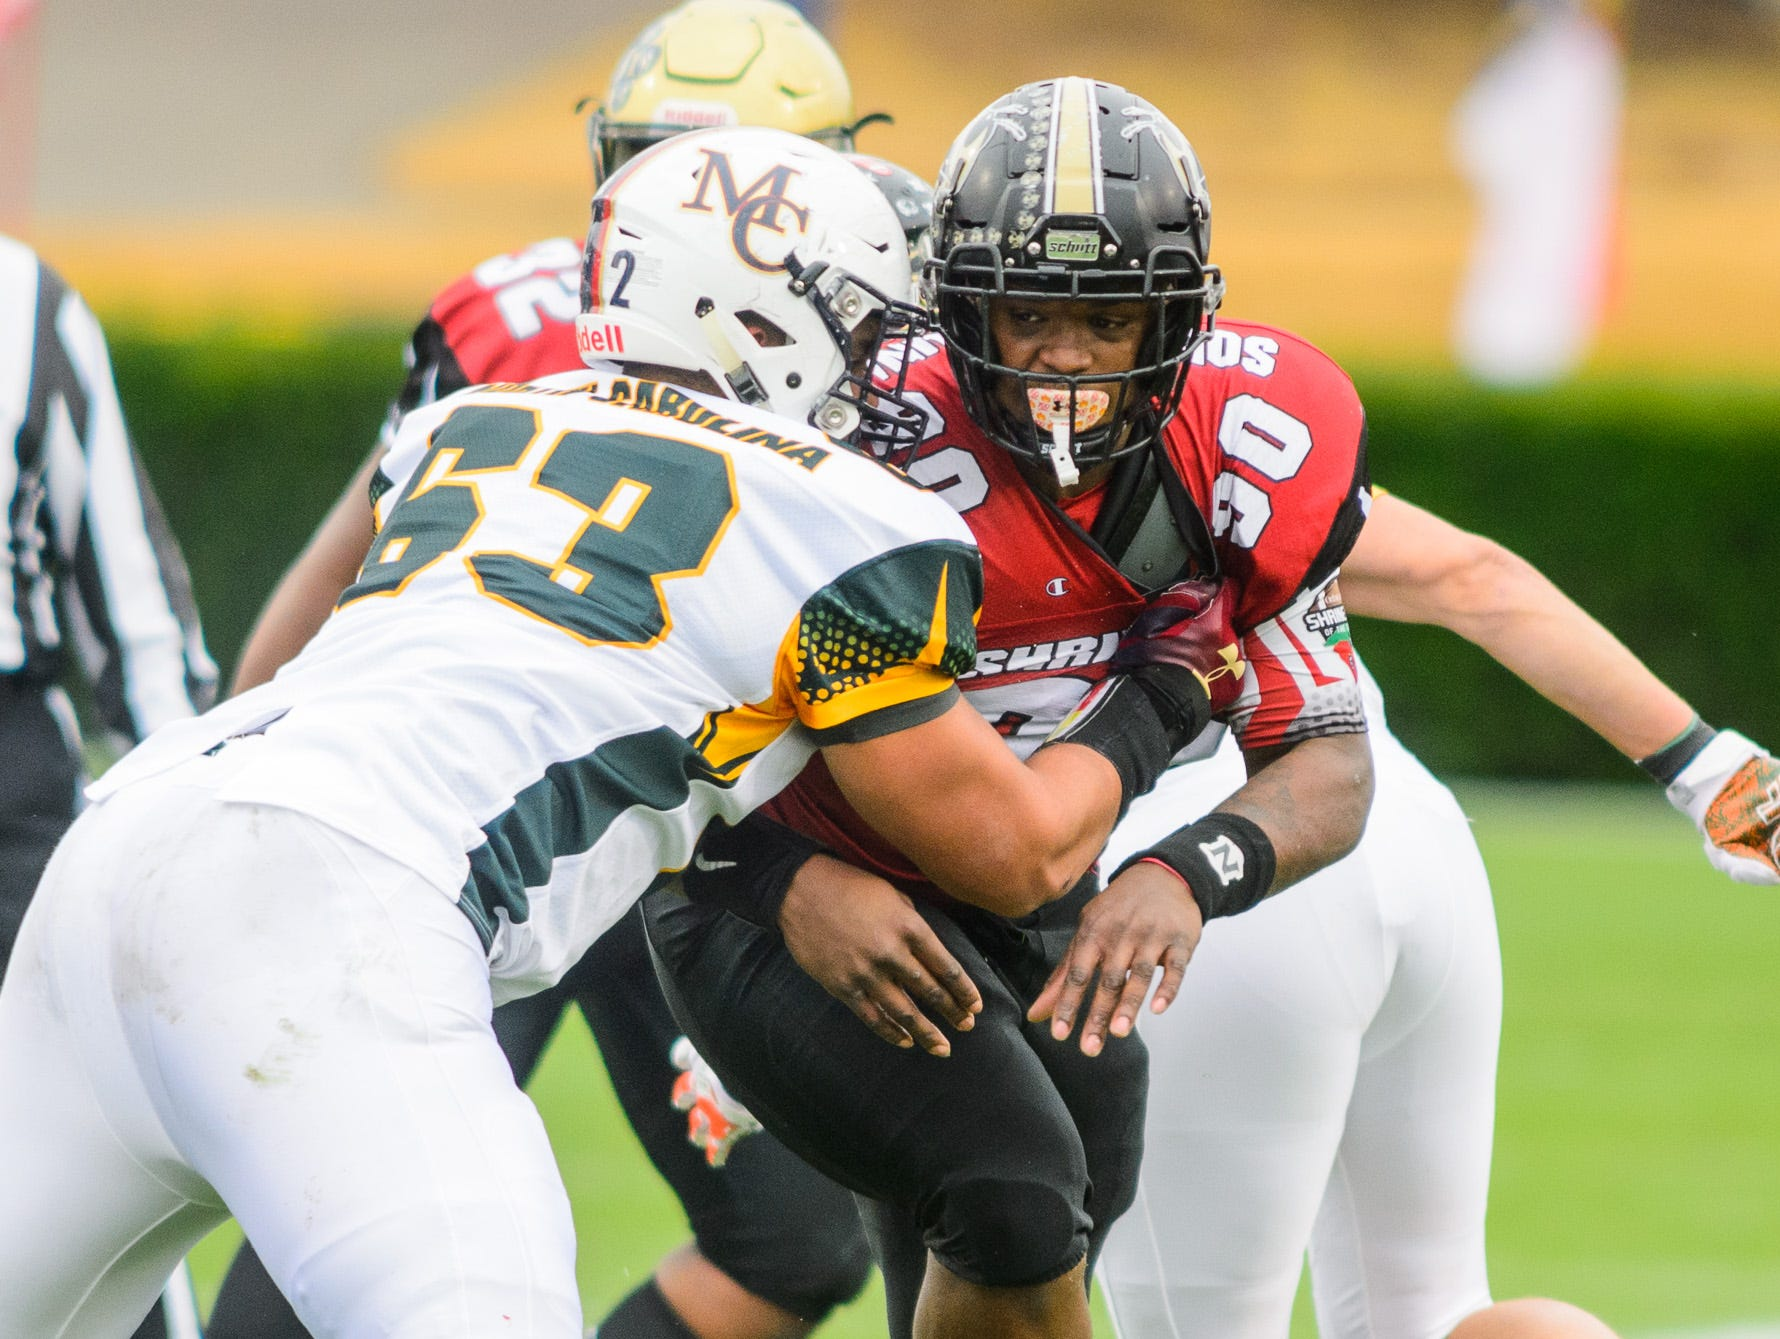 T.L. Hanna defensive lineman Zacch Pickens (90) tries the get around a blocker during the 82nd annual Shrine Bowl of the Carolinas on Saturday, December 15, 2018 at Wofford's Gibbs Stadium in Spartanburg, SC.